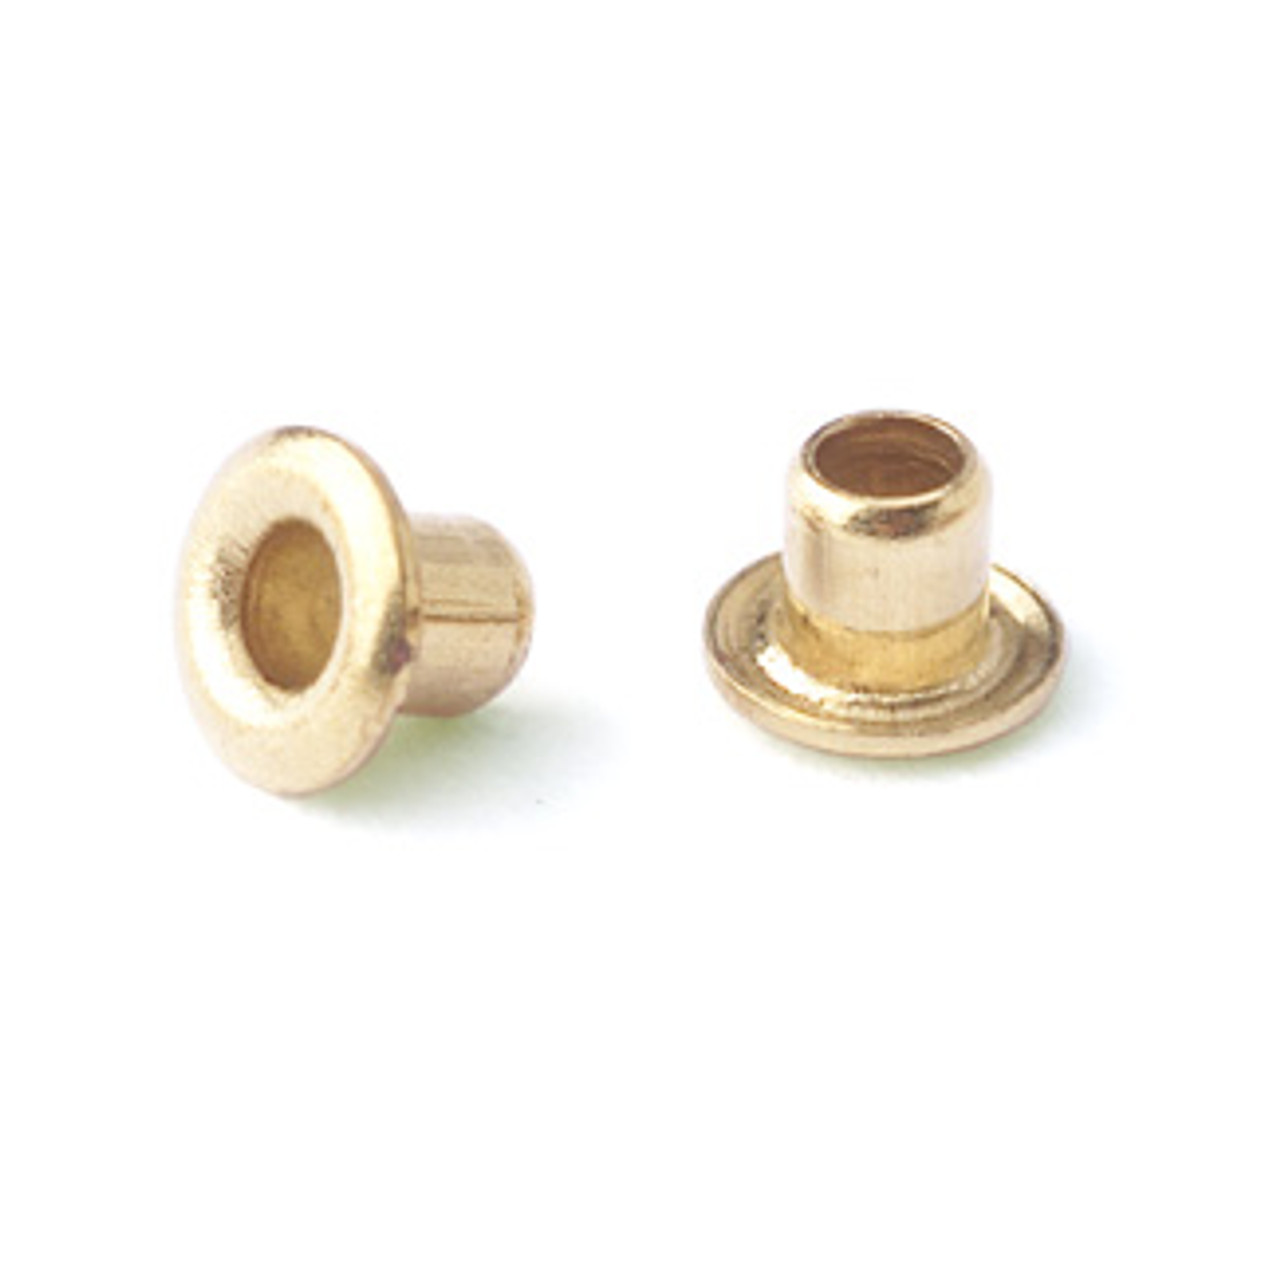 "1/16"" Dia. 1/16"" Long Brass Eyelet (50pcs.)"